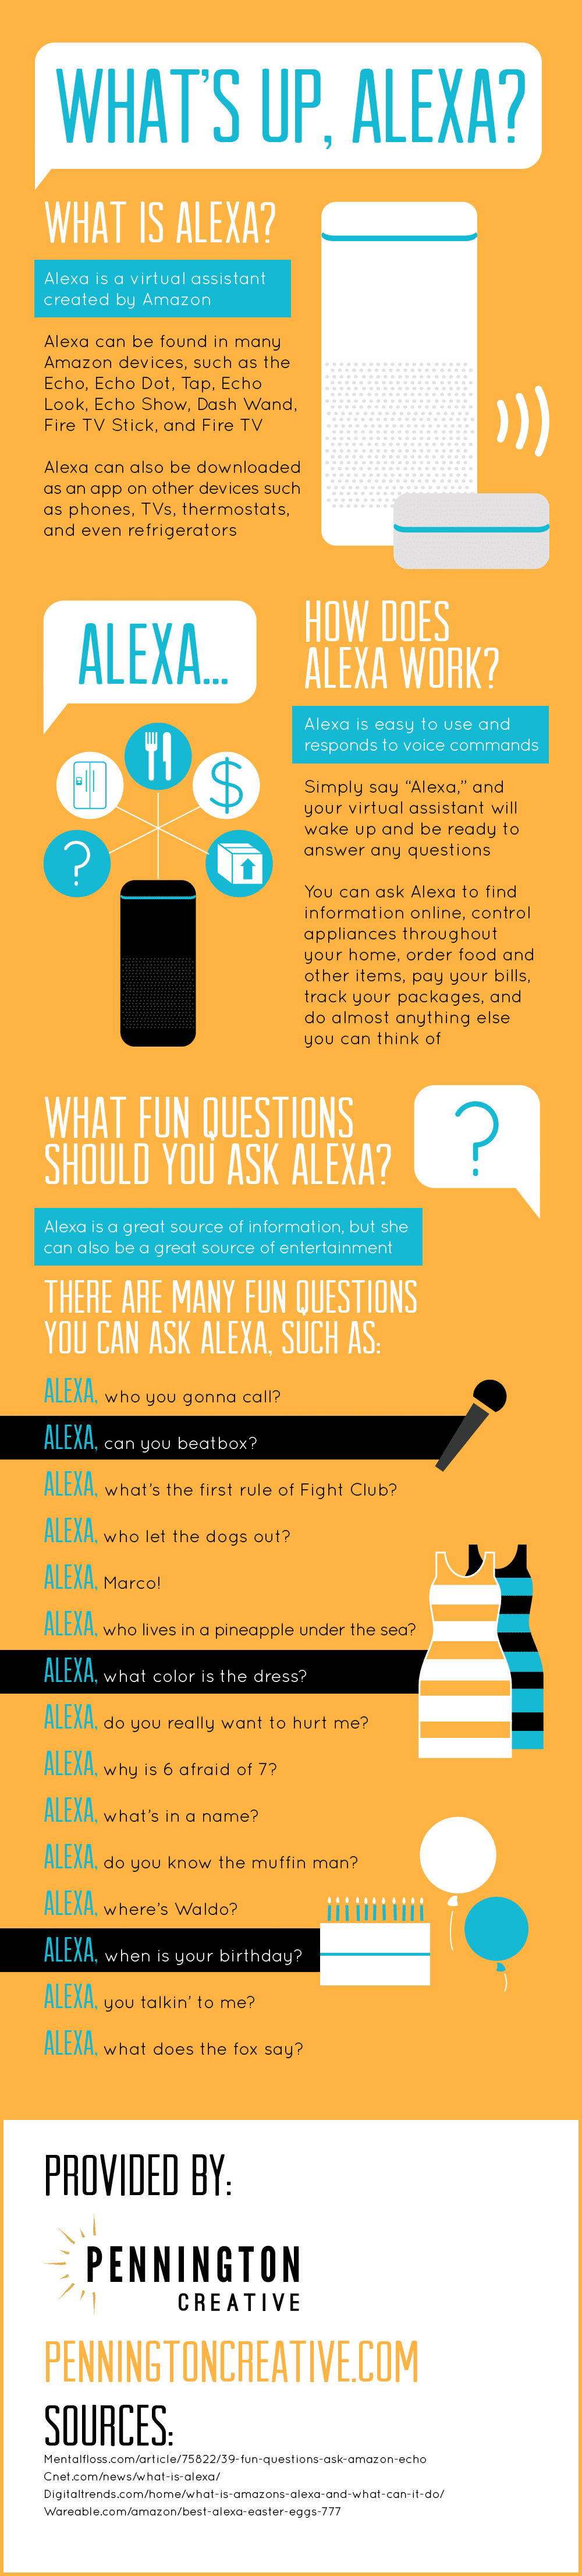 Infographic about Amazon's virtual assistant, Alexa.